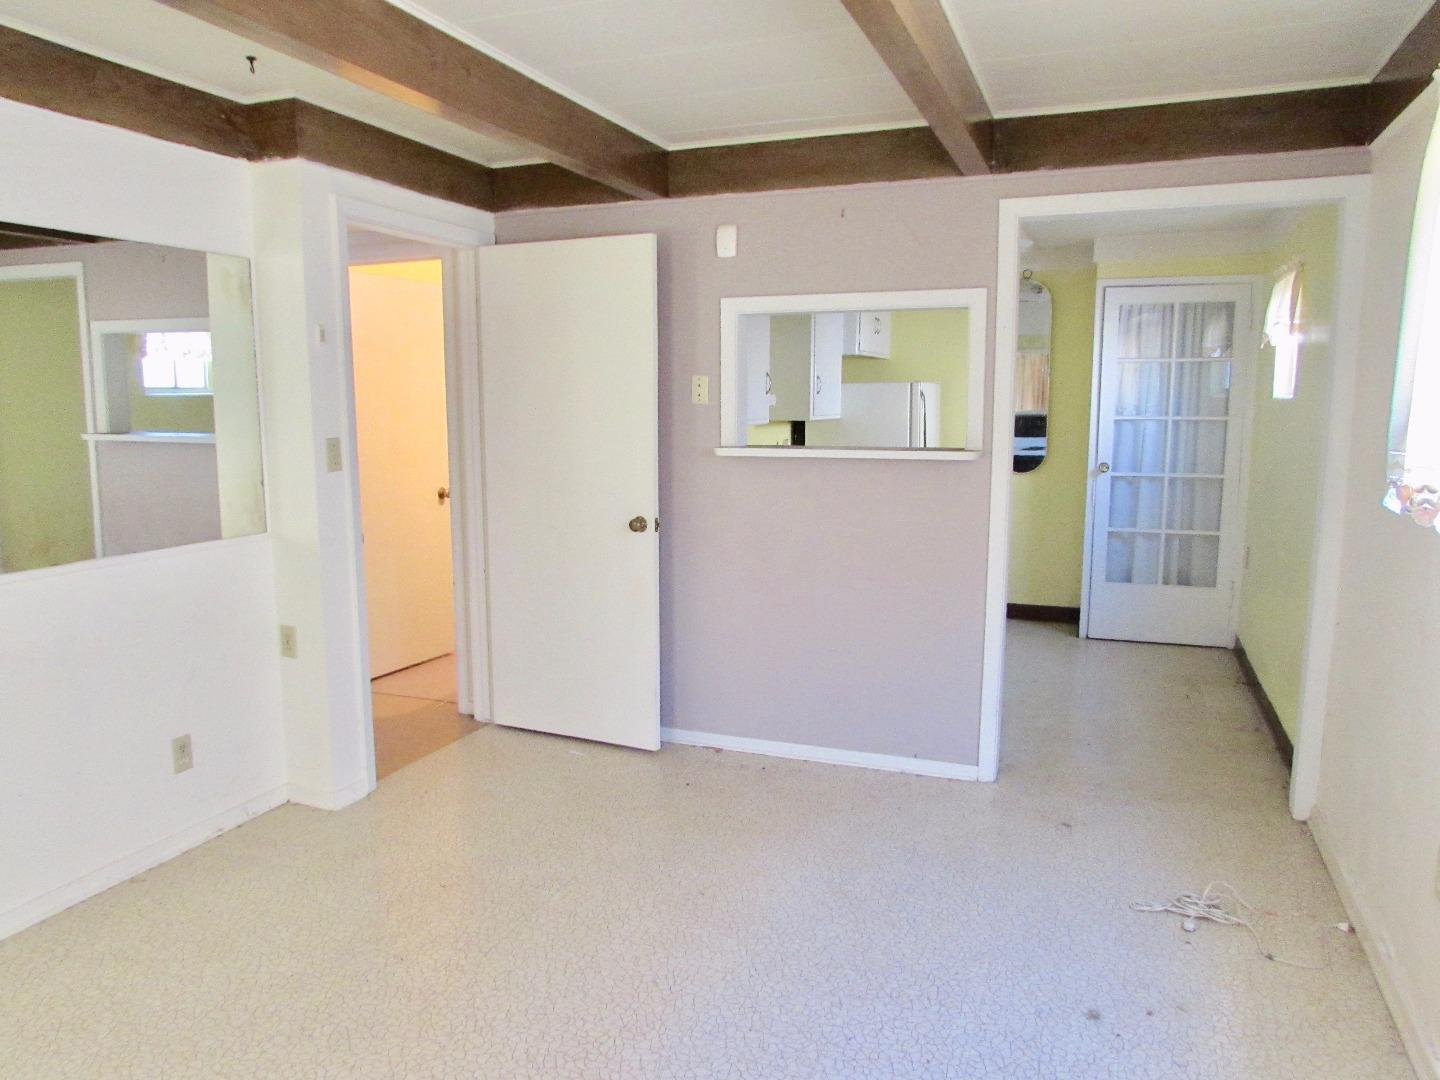 Additional photo for property listing at 428 Day Street  Gonzales, カリフォルニア 93926 アメリカ合衆国